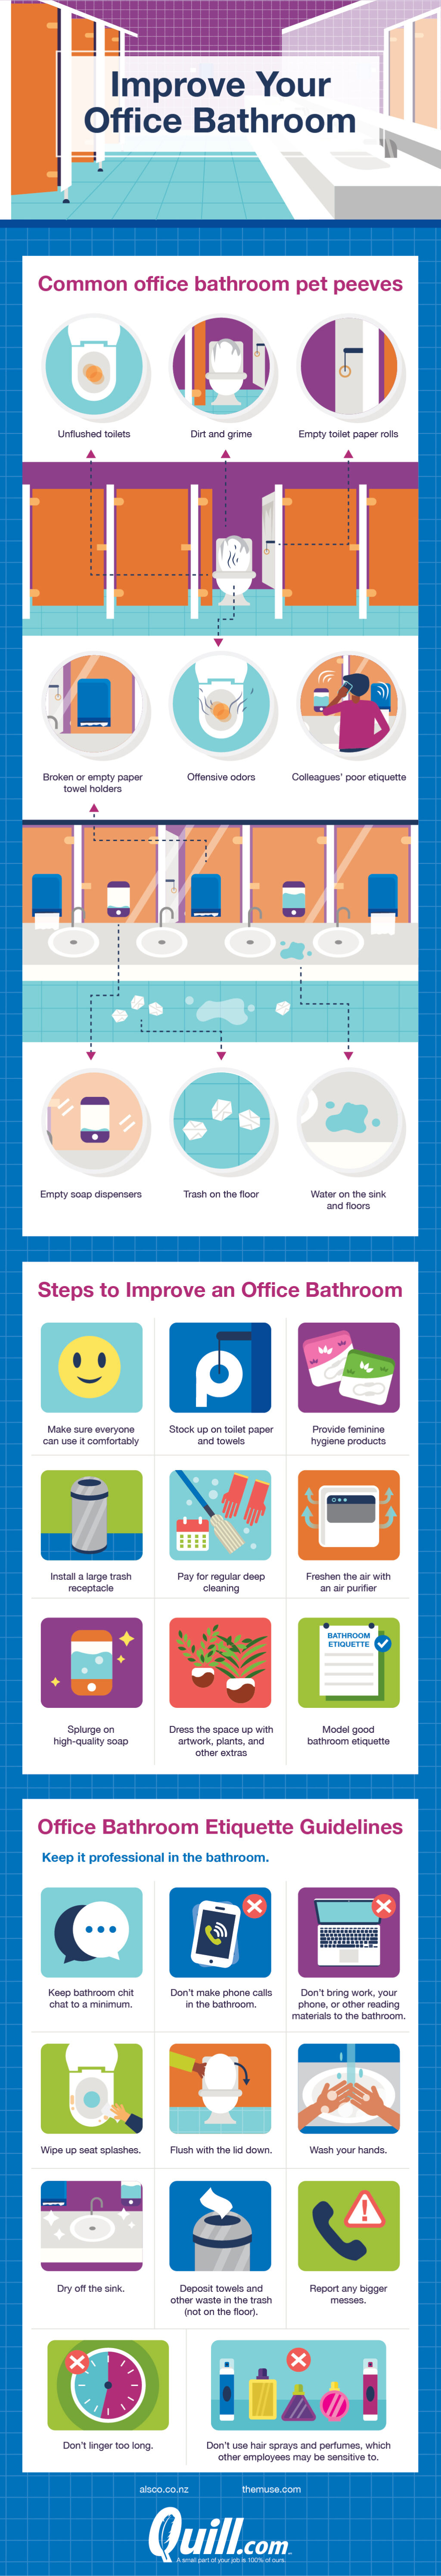 The Biggest Office Bathroom Pet Peeves And How To Avoid Them Quill Com Blog